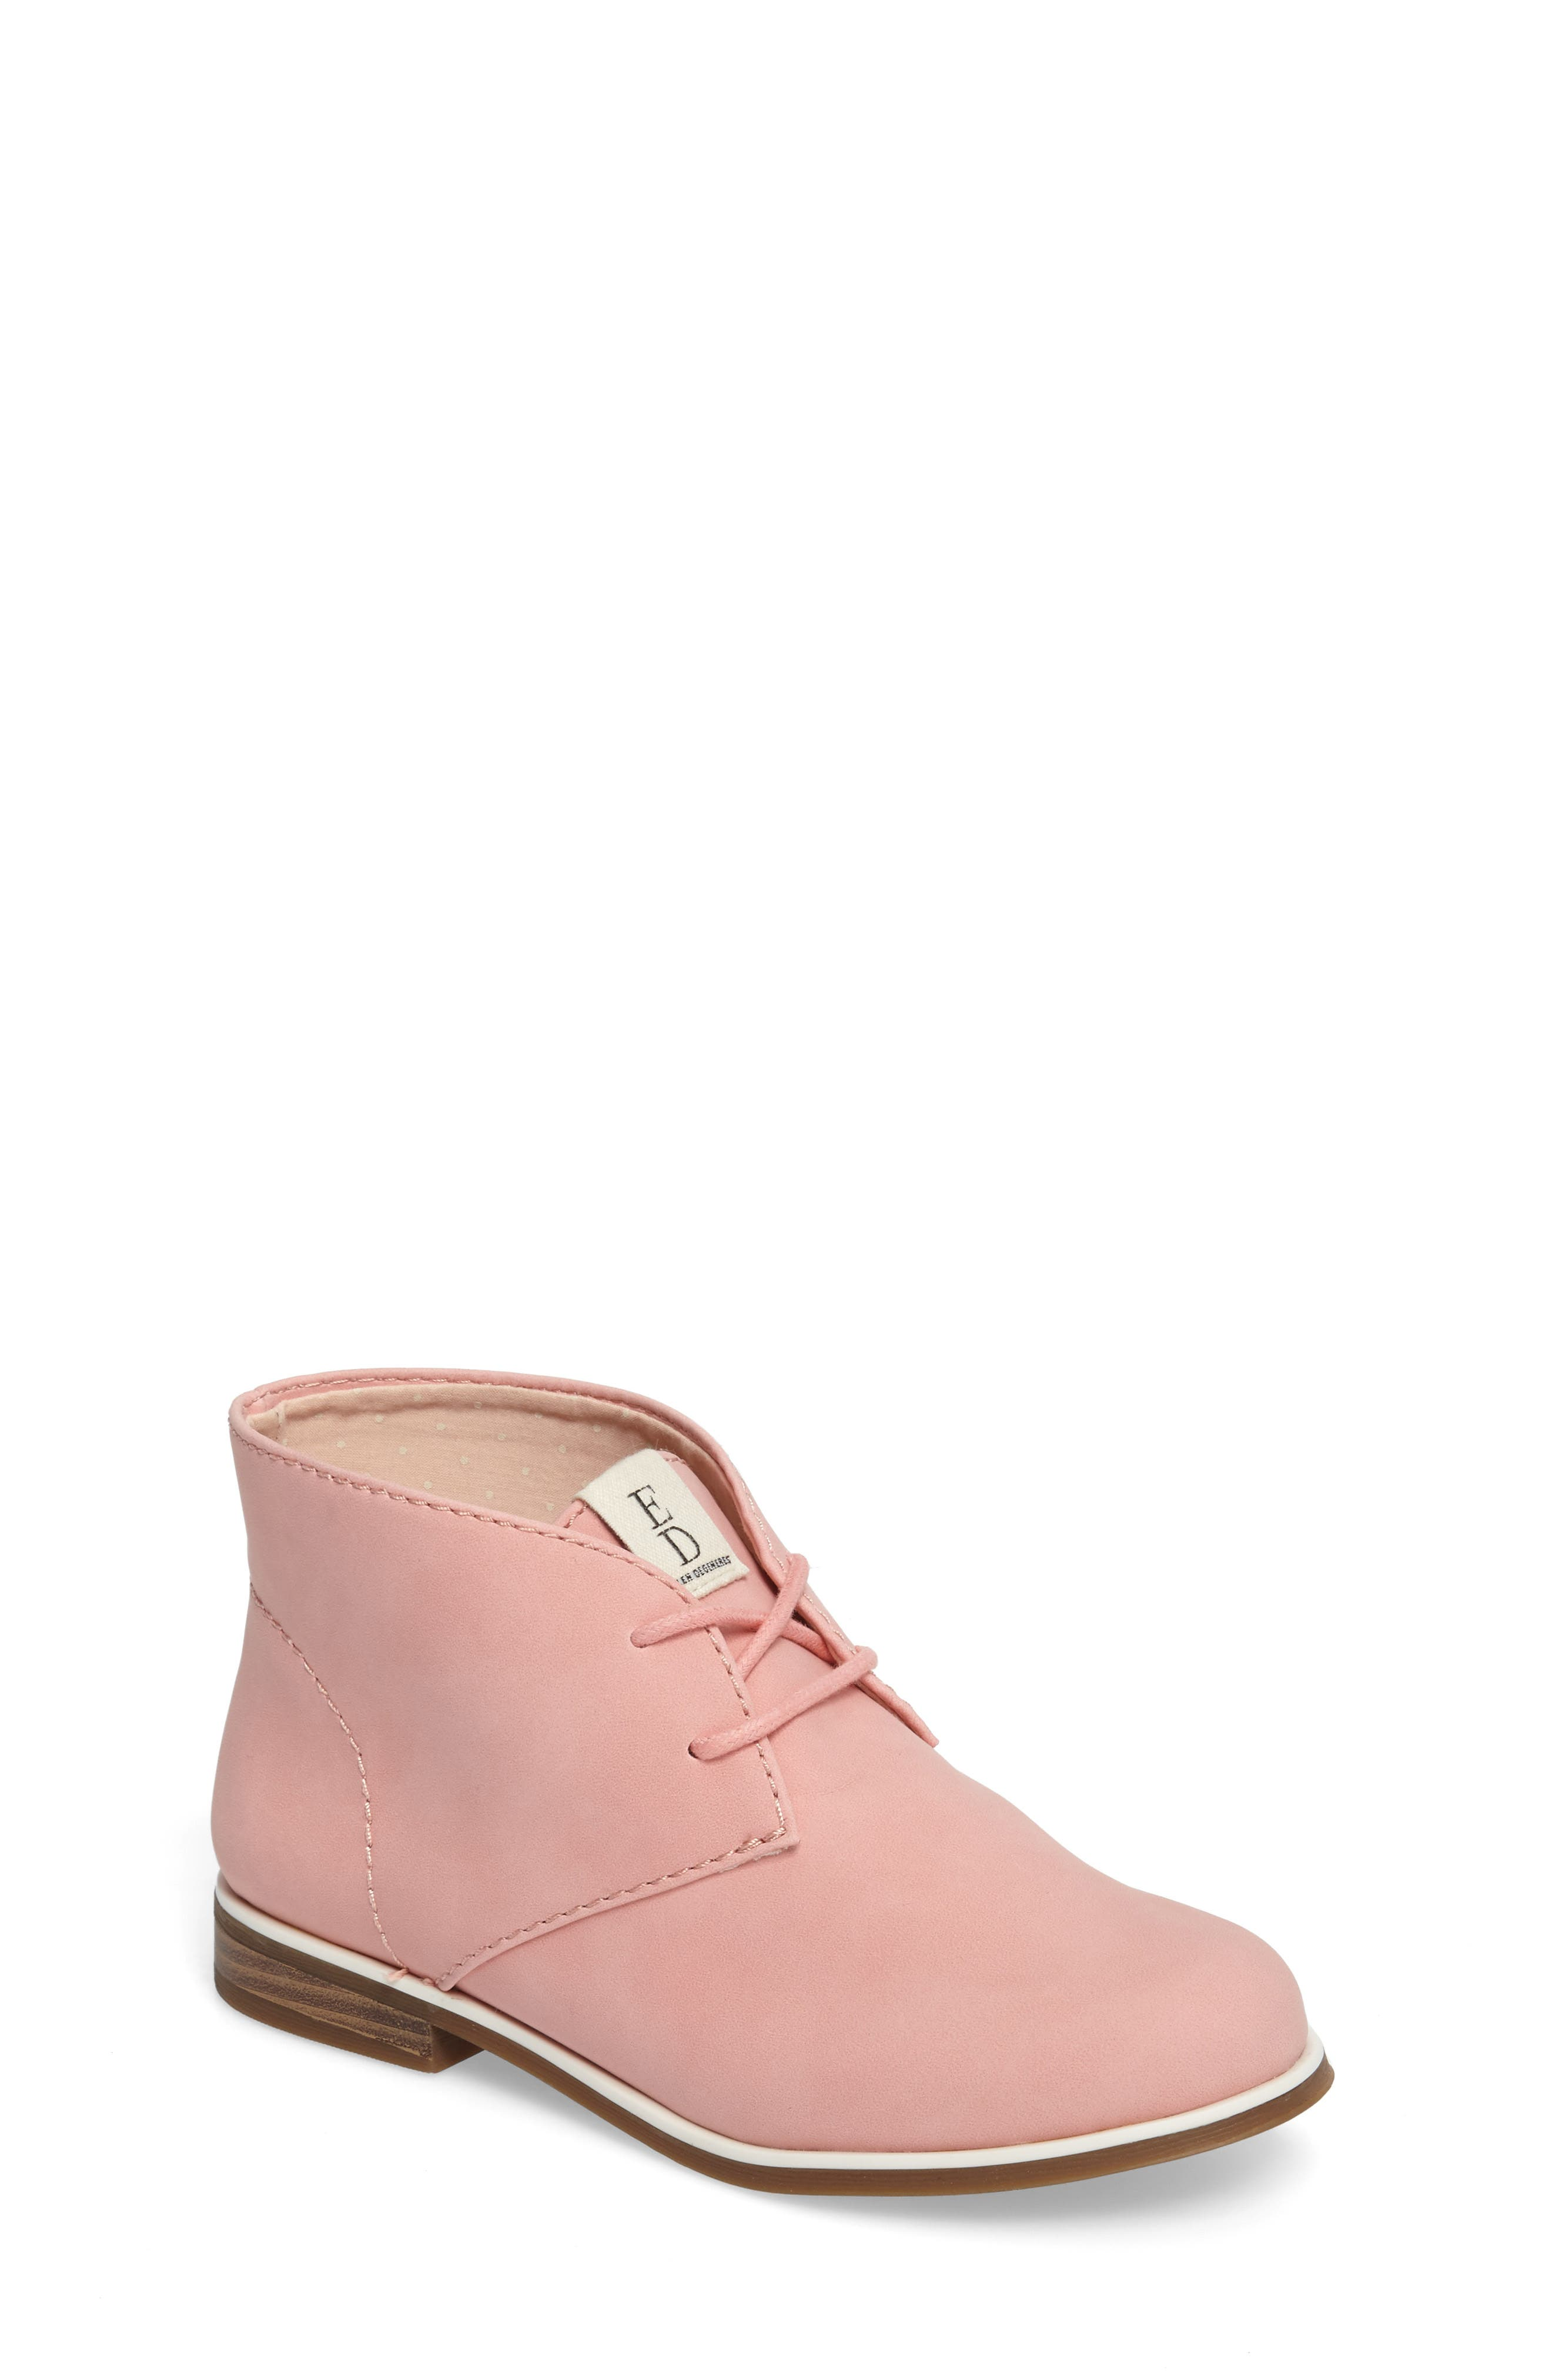 Korie Chukka Bootie,                         Main,                         color, Poppy Pink Suede